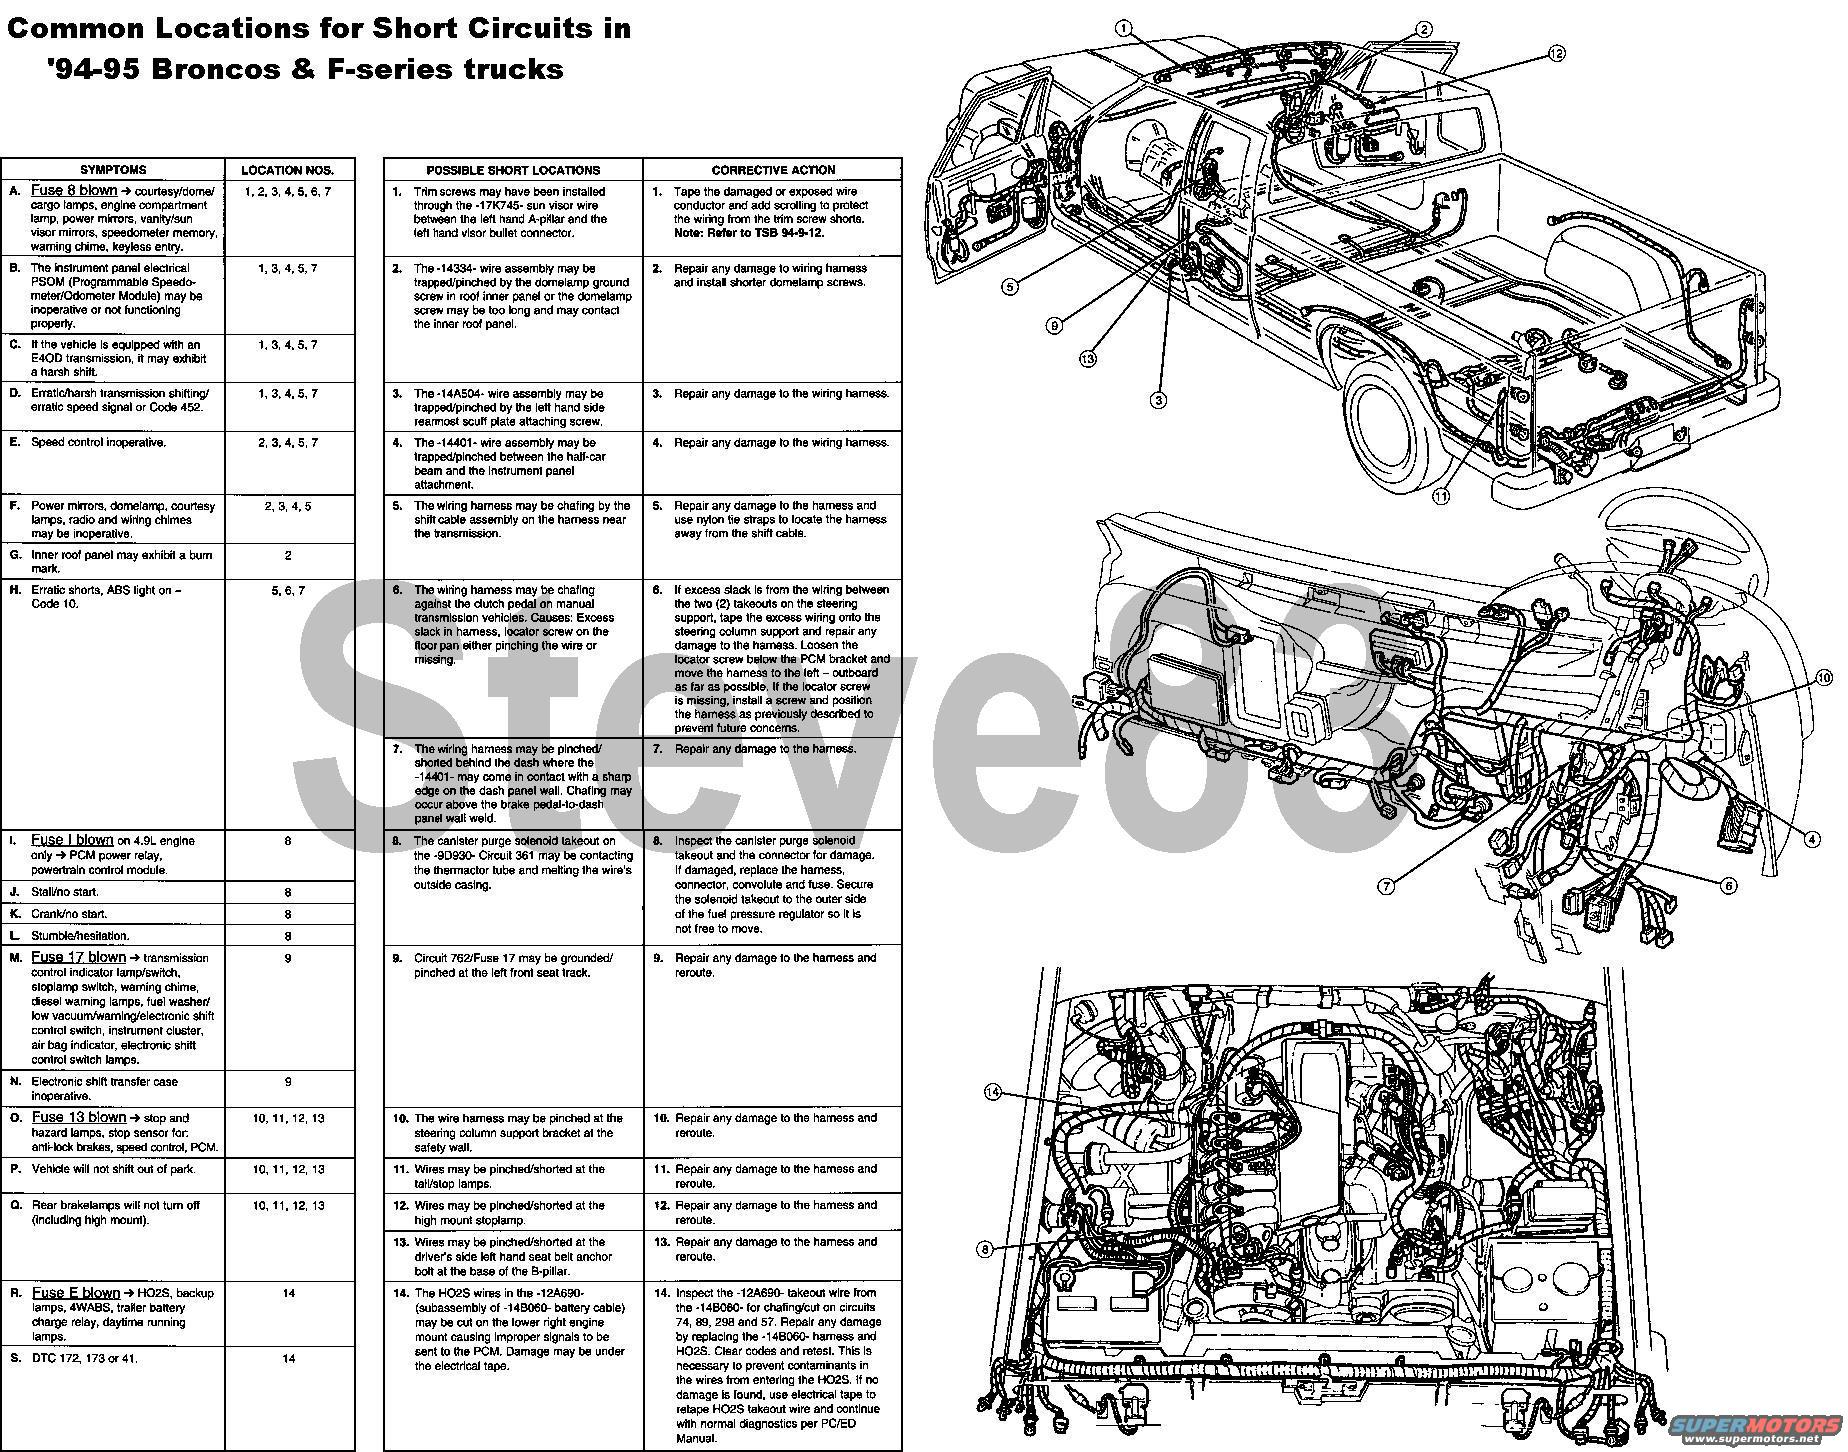 Ford Bronco Tsbs Amp Fsas Recalls For 83 96 Broncos